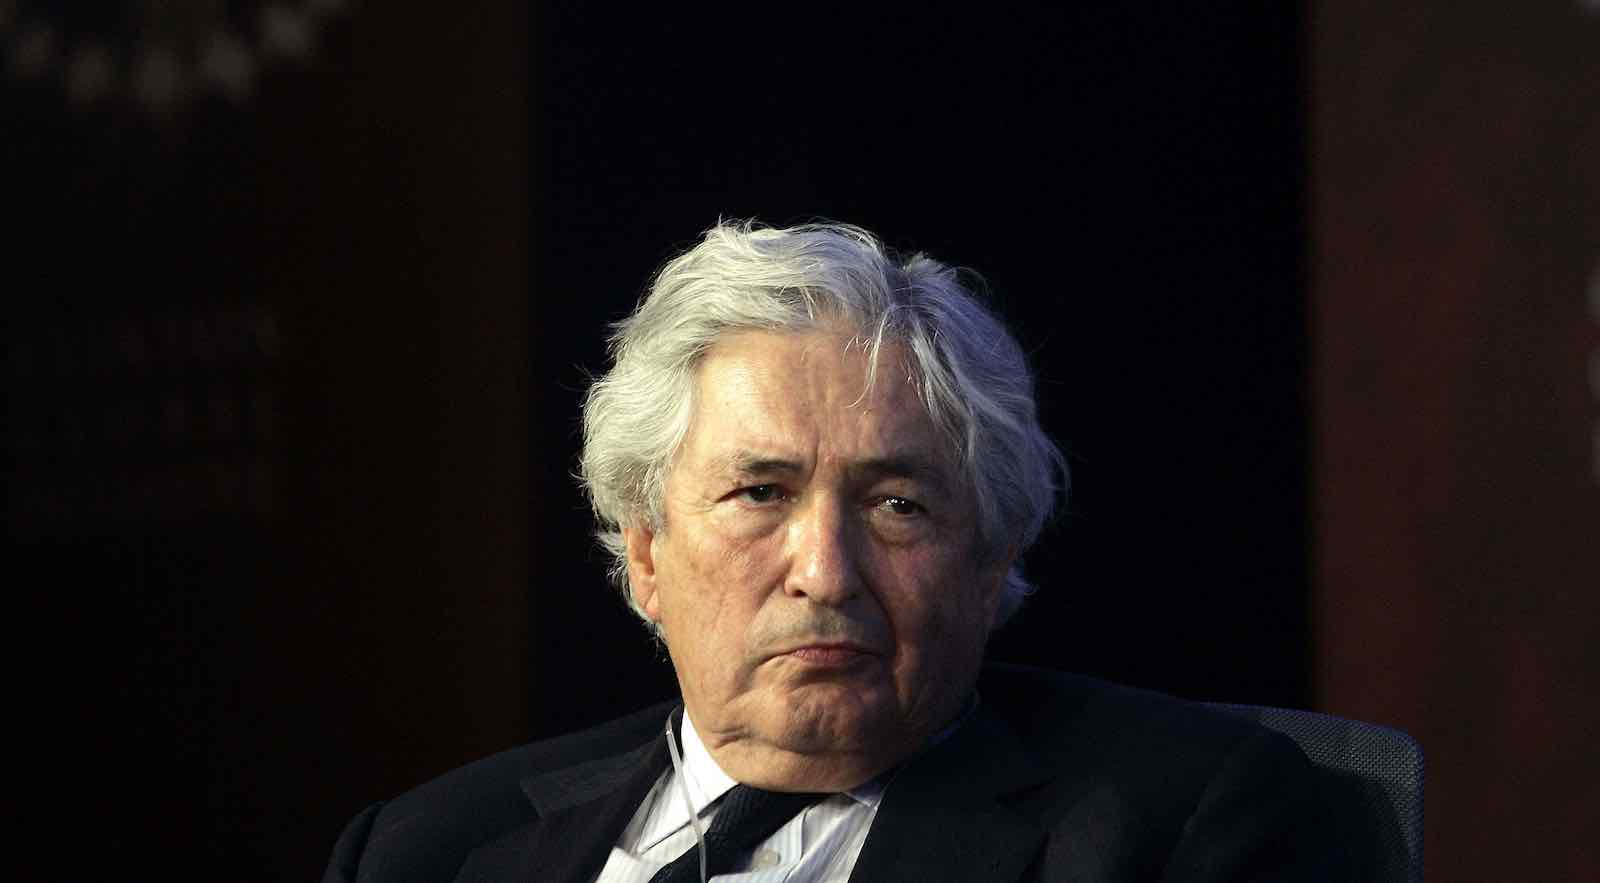 Former World Bank president James Wolfensohn in 2006 at the Clinton Global Initiative annual meeting in New York (Chris Hondros/Getty Images)